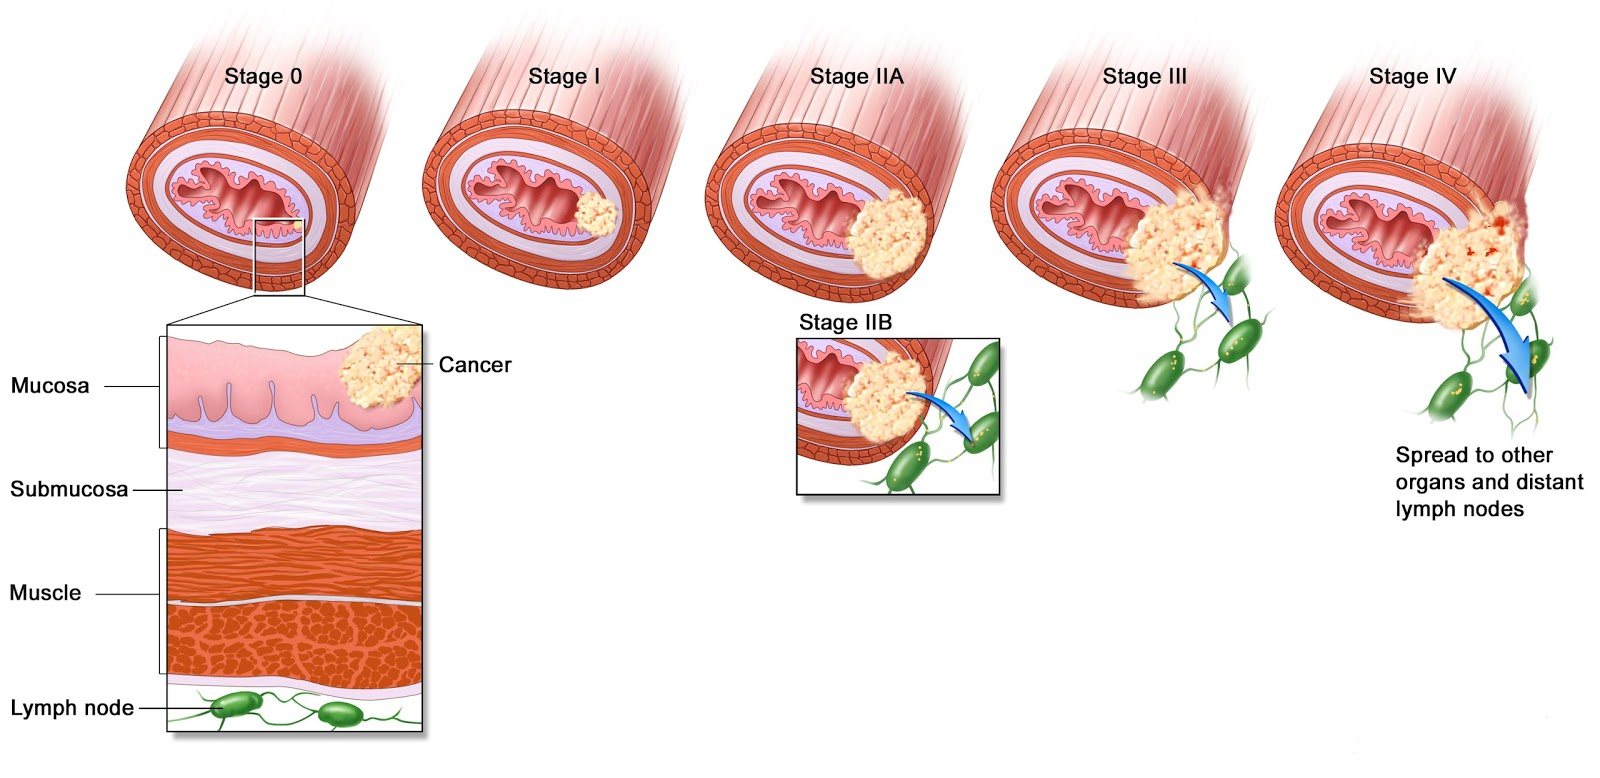 Pathophysiology Of Colon Cancer Diagram Ford 4000 Tractor Wiring Pathology Outlines Tnm Staging Esophageal Carcinomas